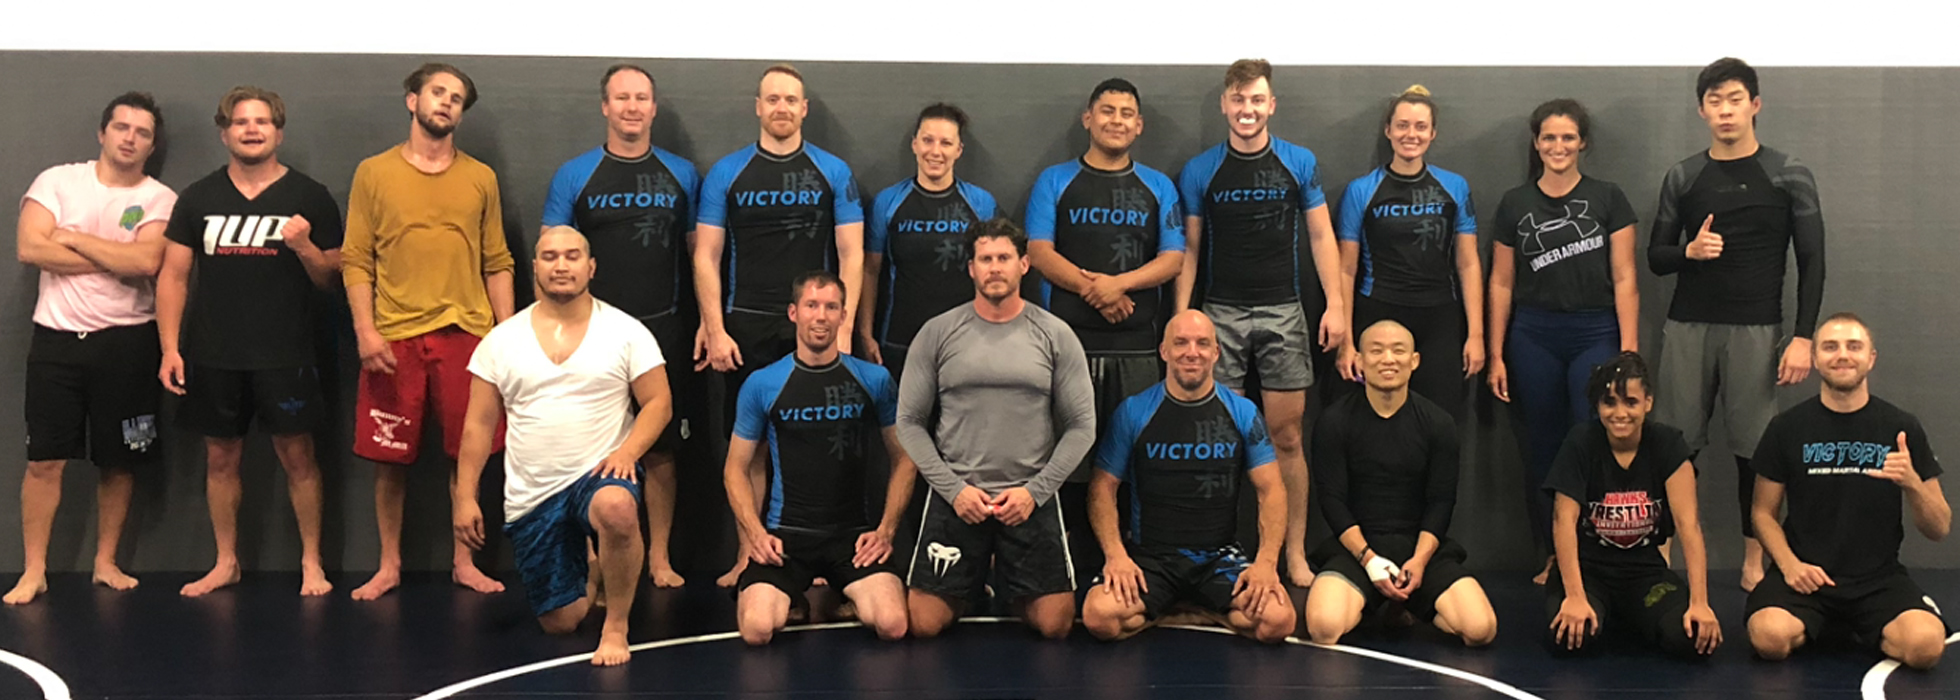 Mixed Martial Arts in Arlington Heights IL, Mixed Martial Arts near Schaumburg IL, Mixed Martial Arts near Elk Grove Village IL, Mixed Martial Arts near Mount Prospect IL, Mixed Martial Arts near Palatine IL, Mixed Martial Arts near Buffalo Grove IL